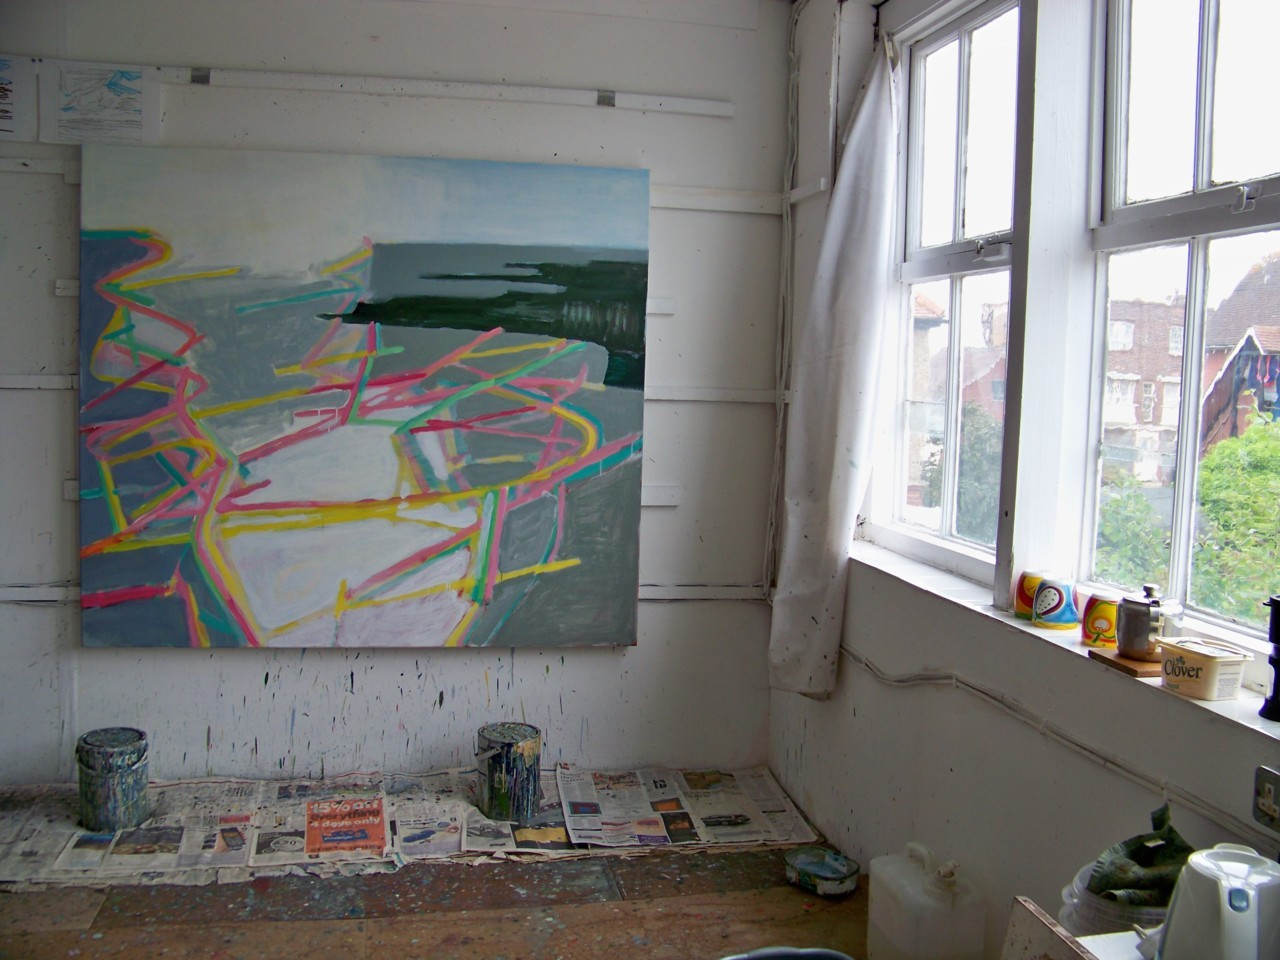 30th May 2012. In the studio this morning. I have been working on this painting for a few months now. I made a few more adjustments today and I think I will work on the horizon at top right tomorrow.